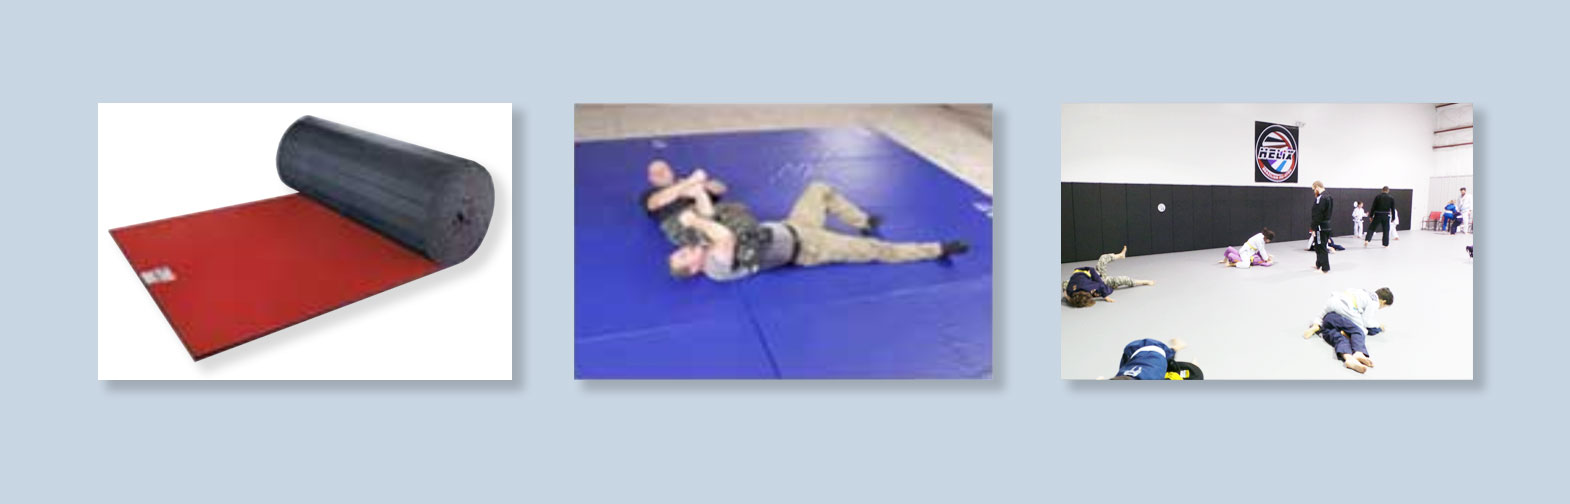 Martial Arts Mats - Dojo MMA Floor Covering